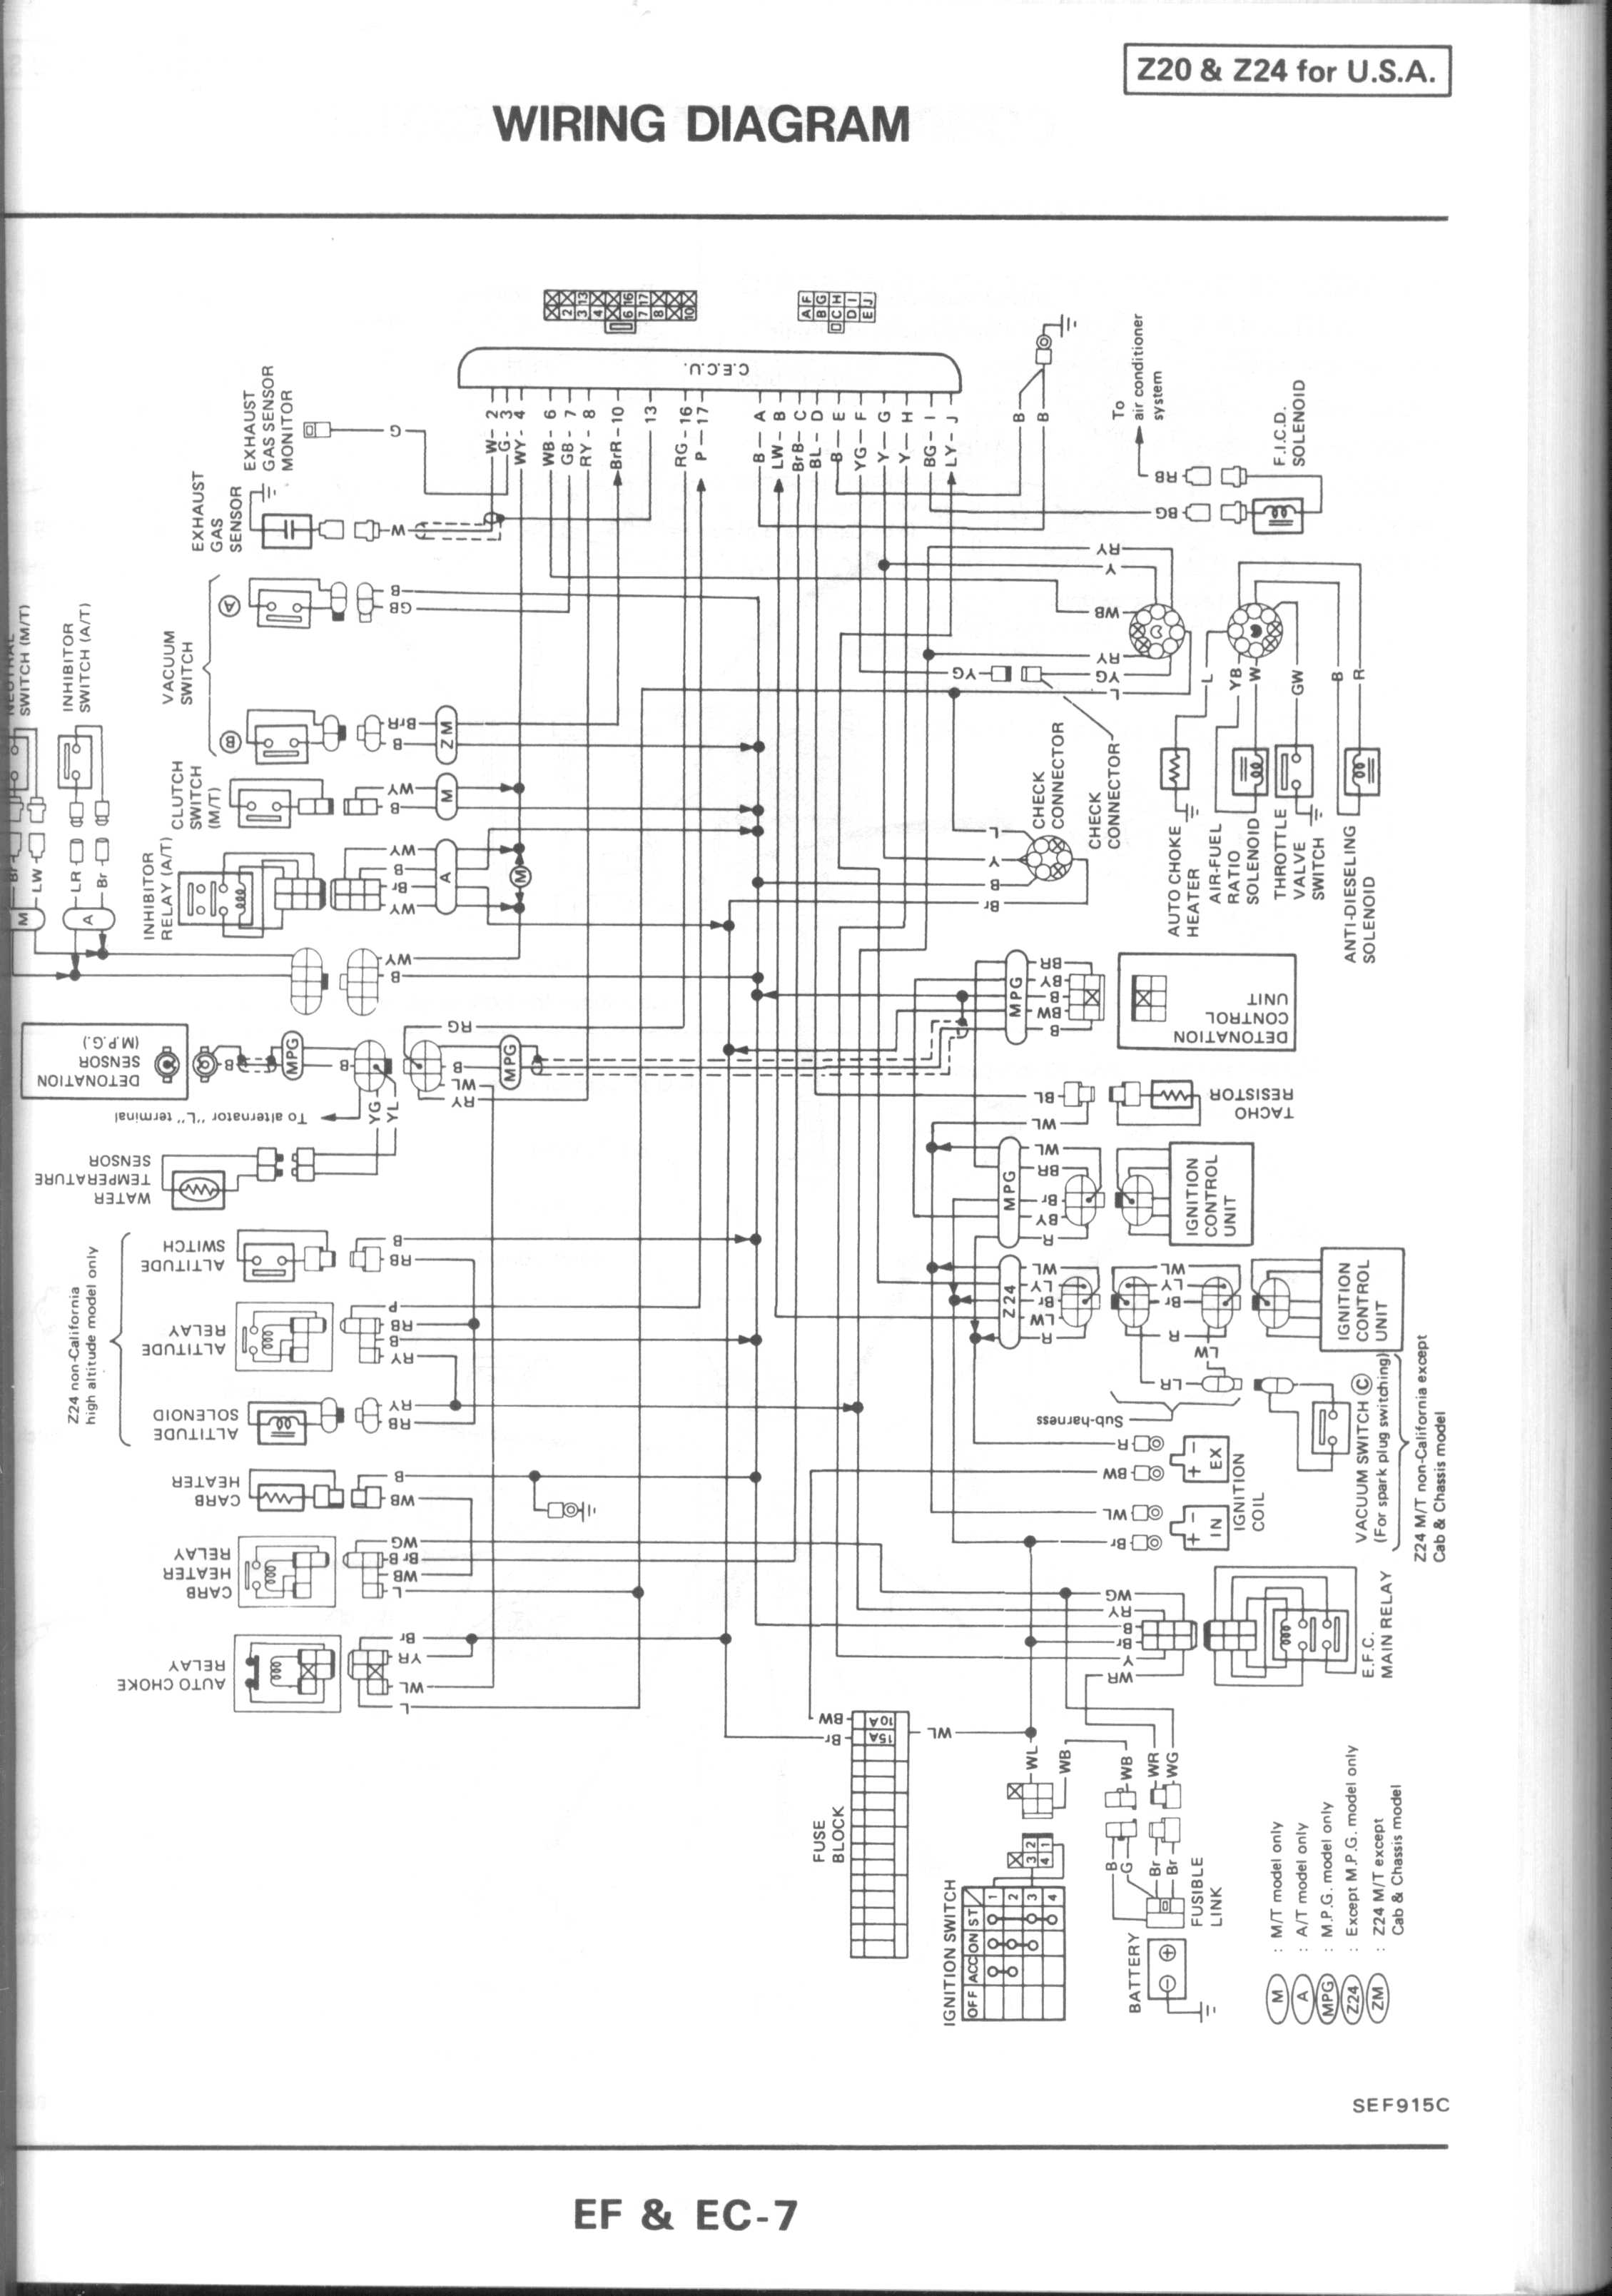 1990 nissan pickup wiring diagram 1990 image nissan nut on 1990 nissan pickup wiring diagram